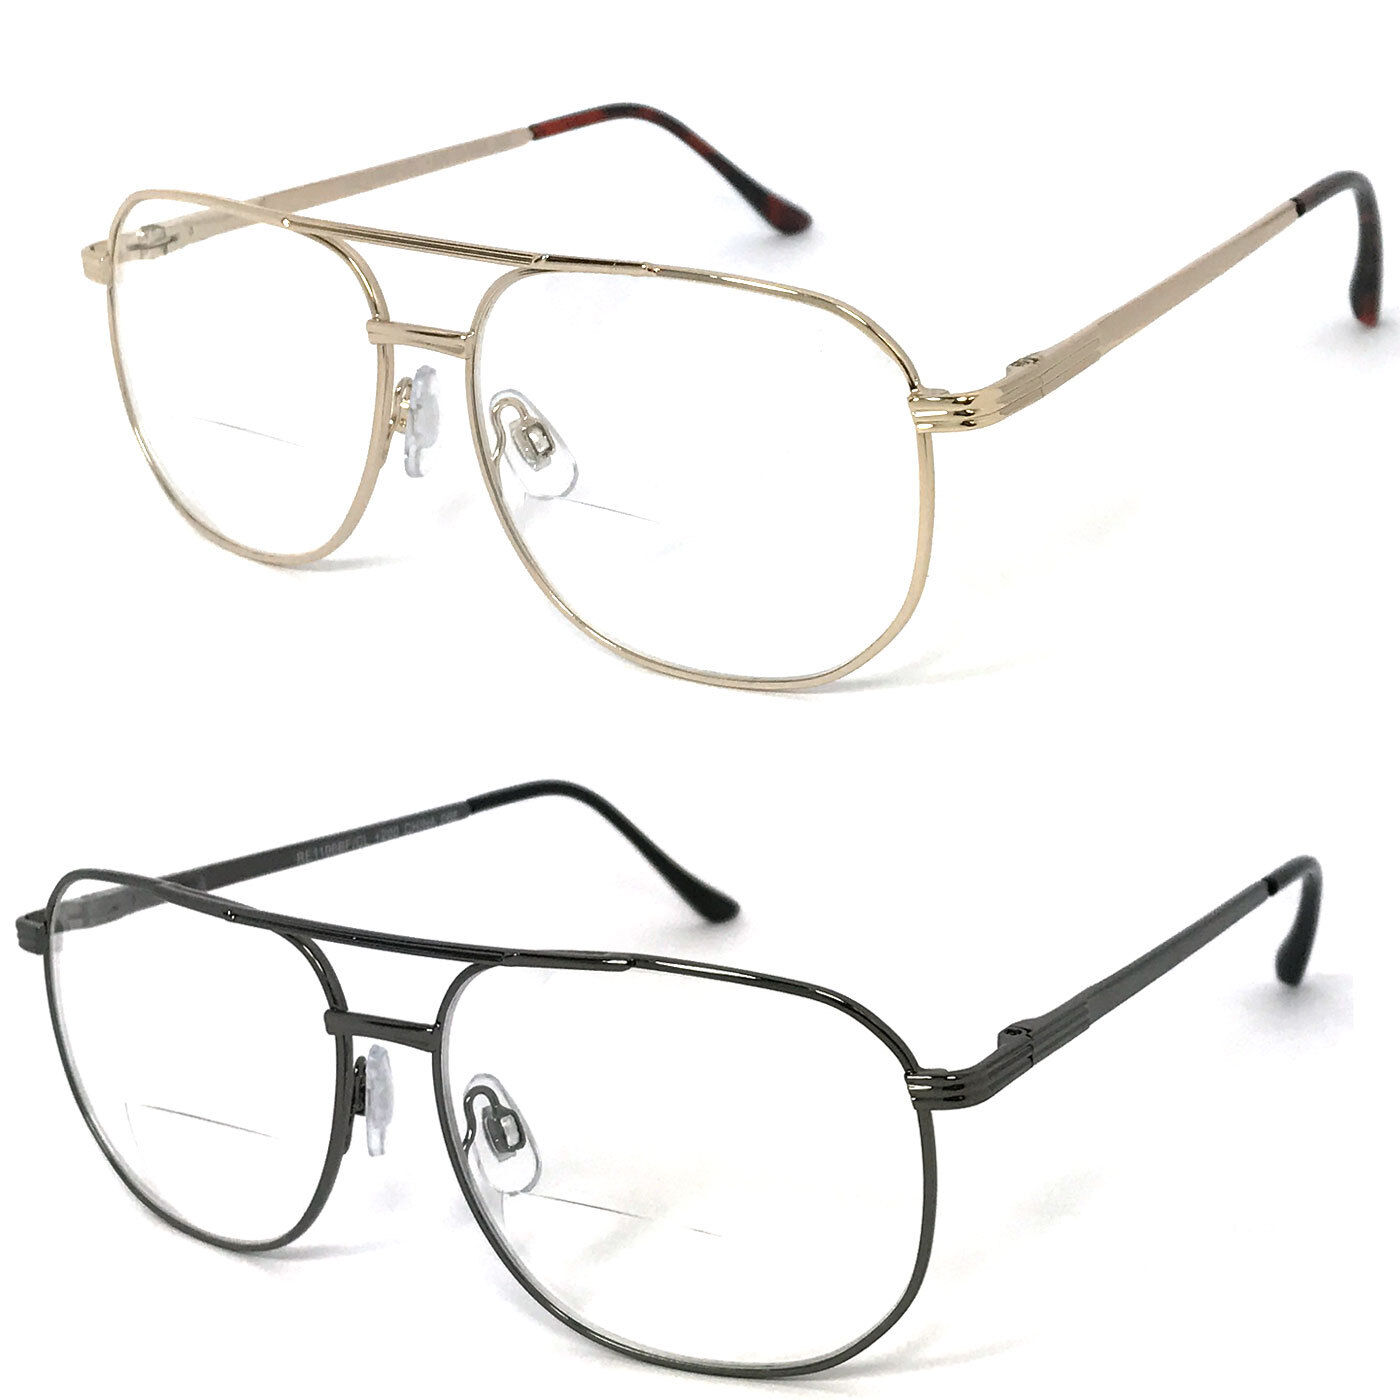 901f5cbb82b Details about 1 or 2 Pairs Metal Frame Large Aviator Bifocal Reading  Glasses Spring Temples